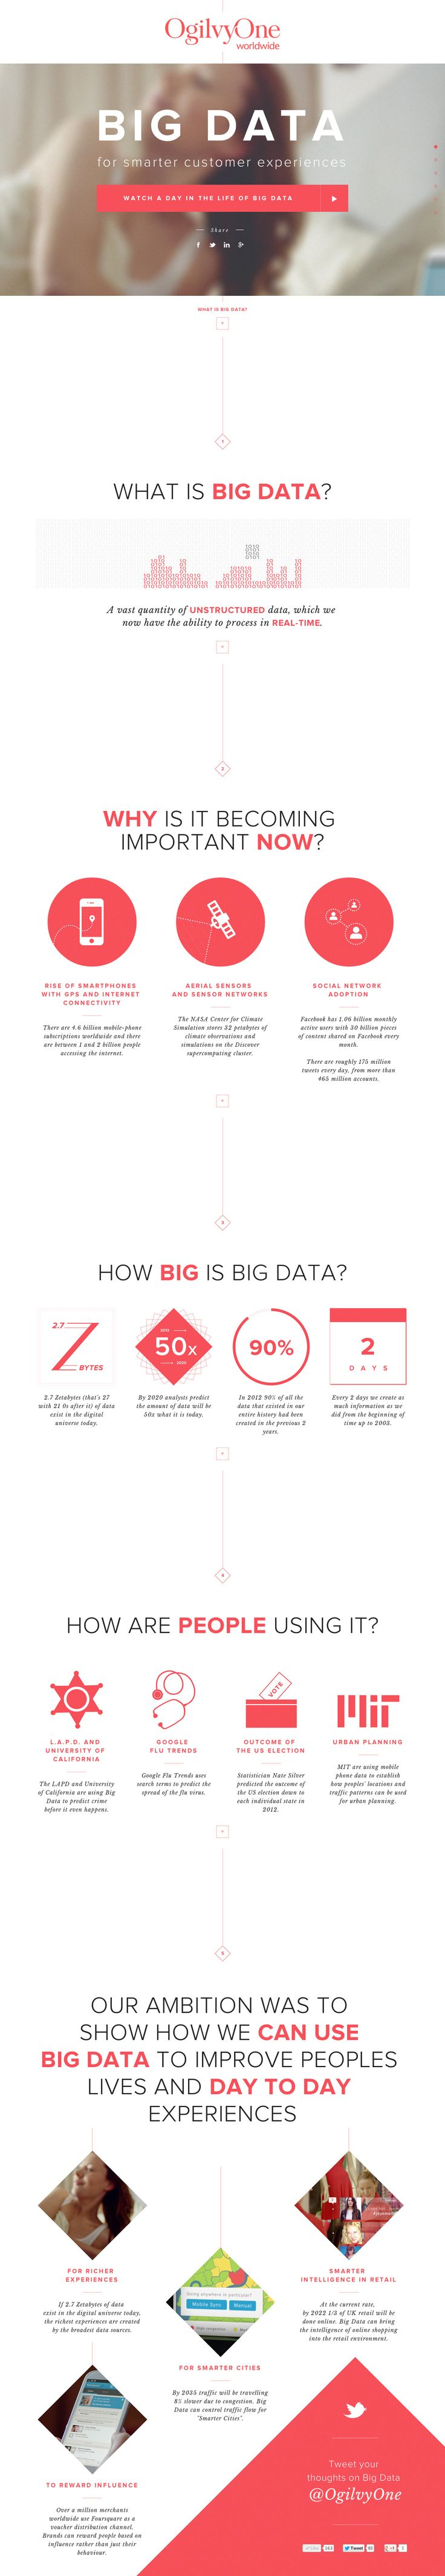 """The team over at OgilvyOne demonstrate how """"Big Data"""" can create smarter customer experiences in a slick responsive one pager filled with Infographics."""